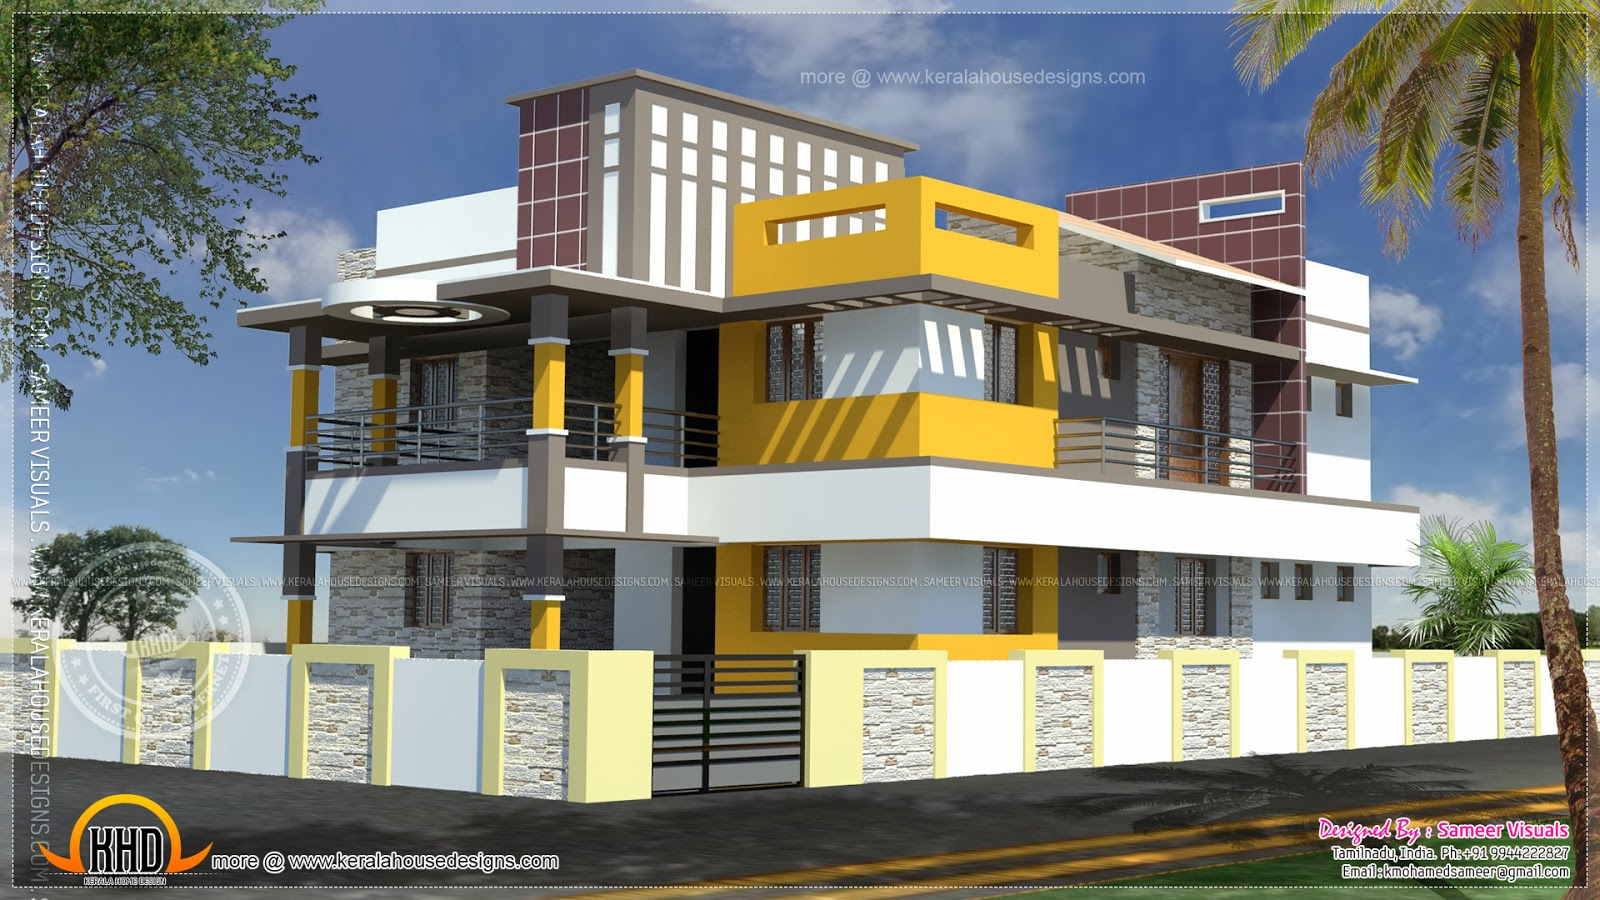 201 square meter modern tamilnadu house home kerala plans for Tamilnadu house designs photos